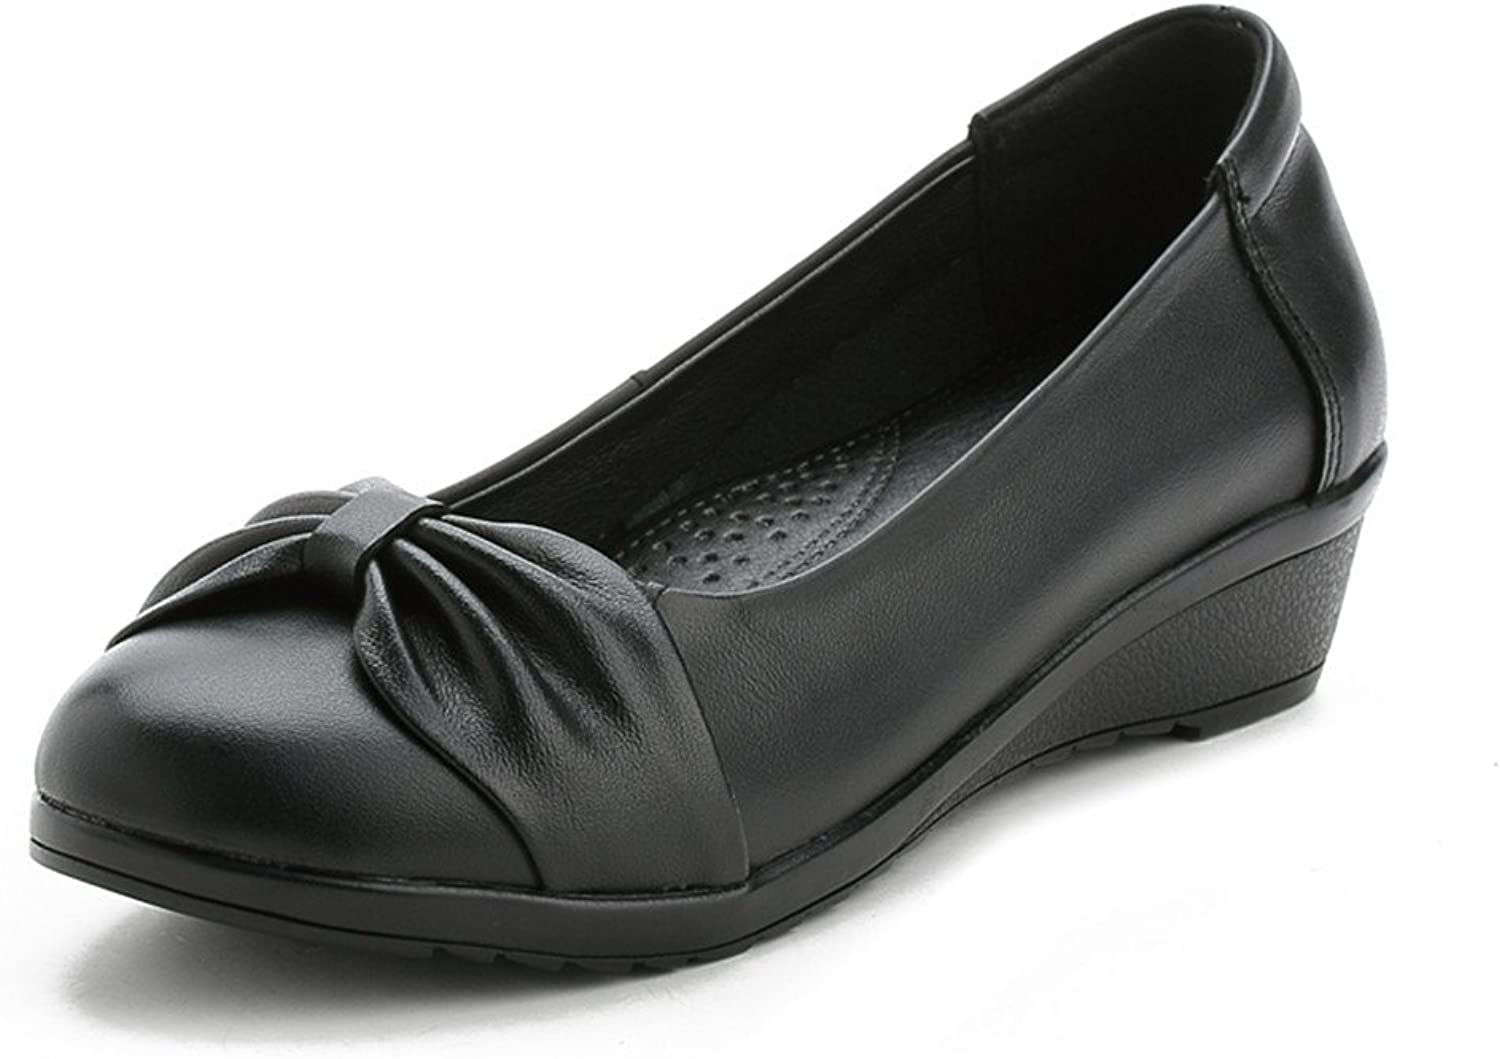 XDX Taste Of Life Women shoes Genuine Leather Soft Wedge Pumps